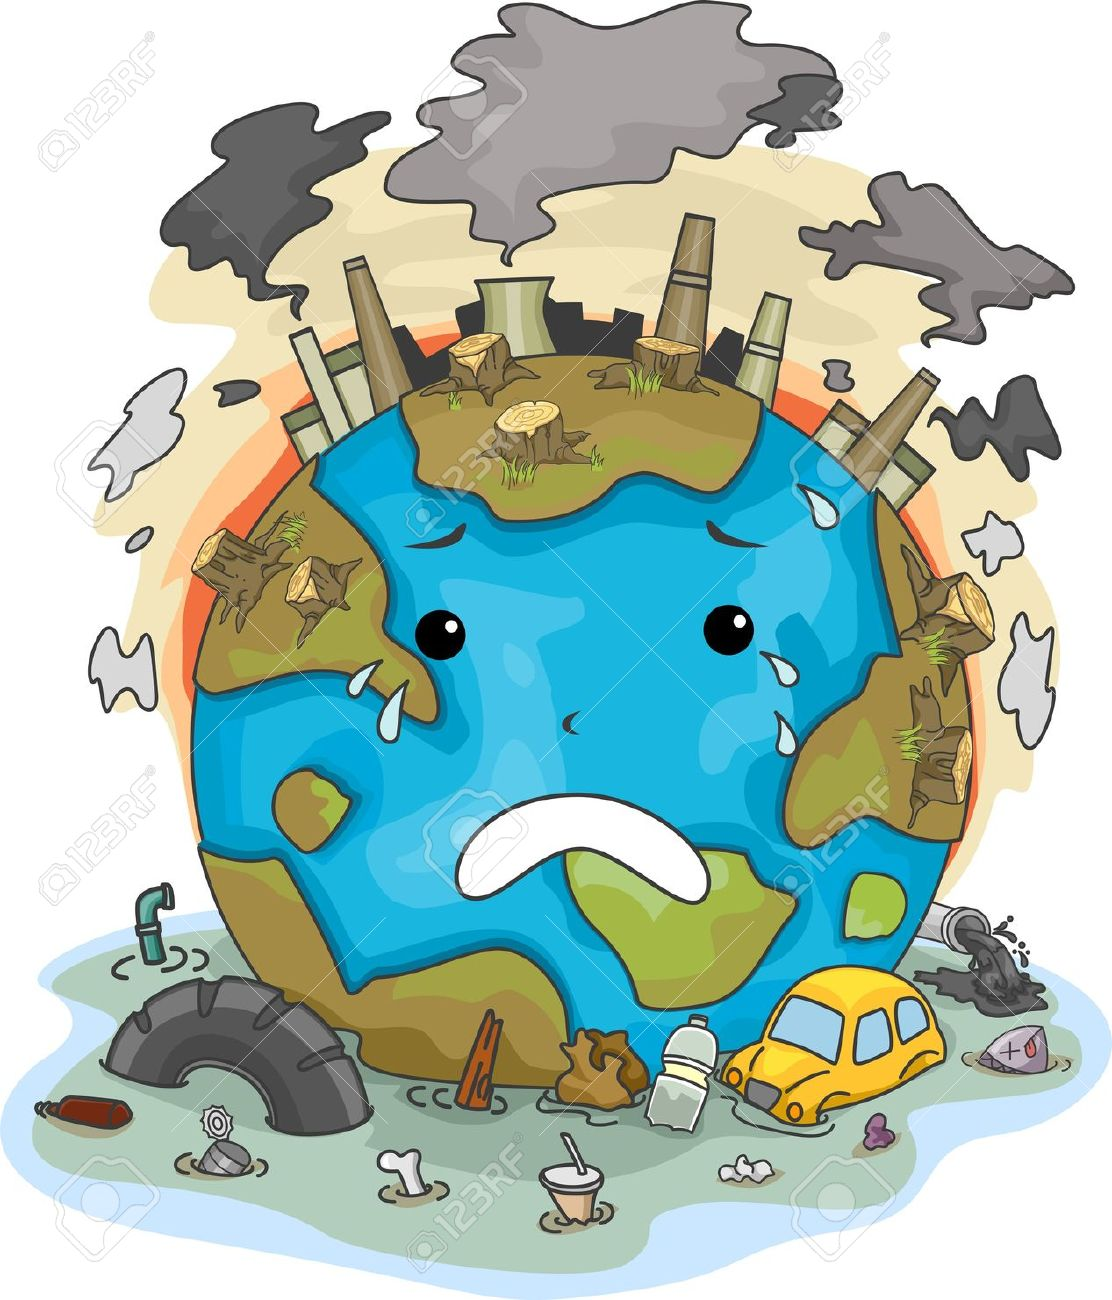 We are destroying our planet essay